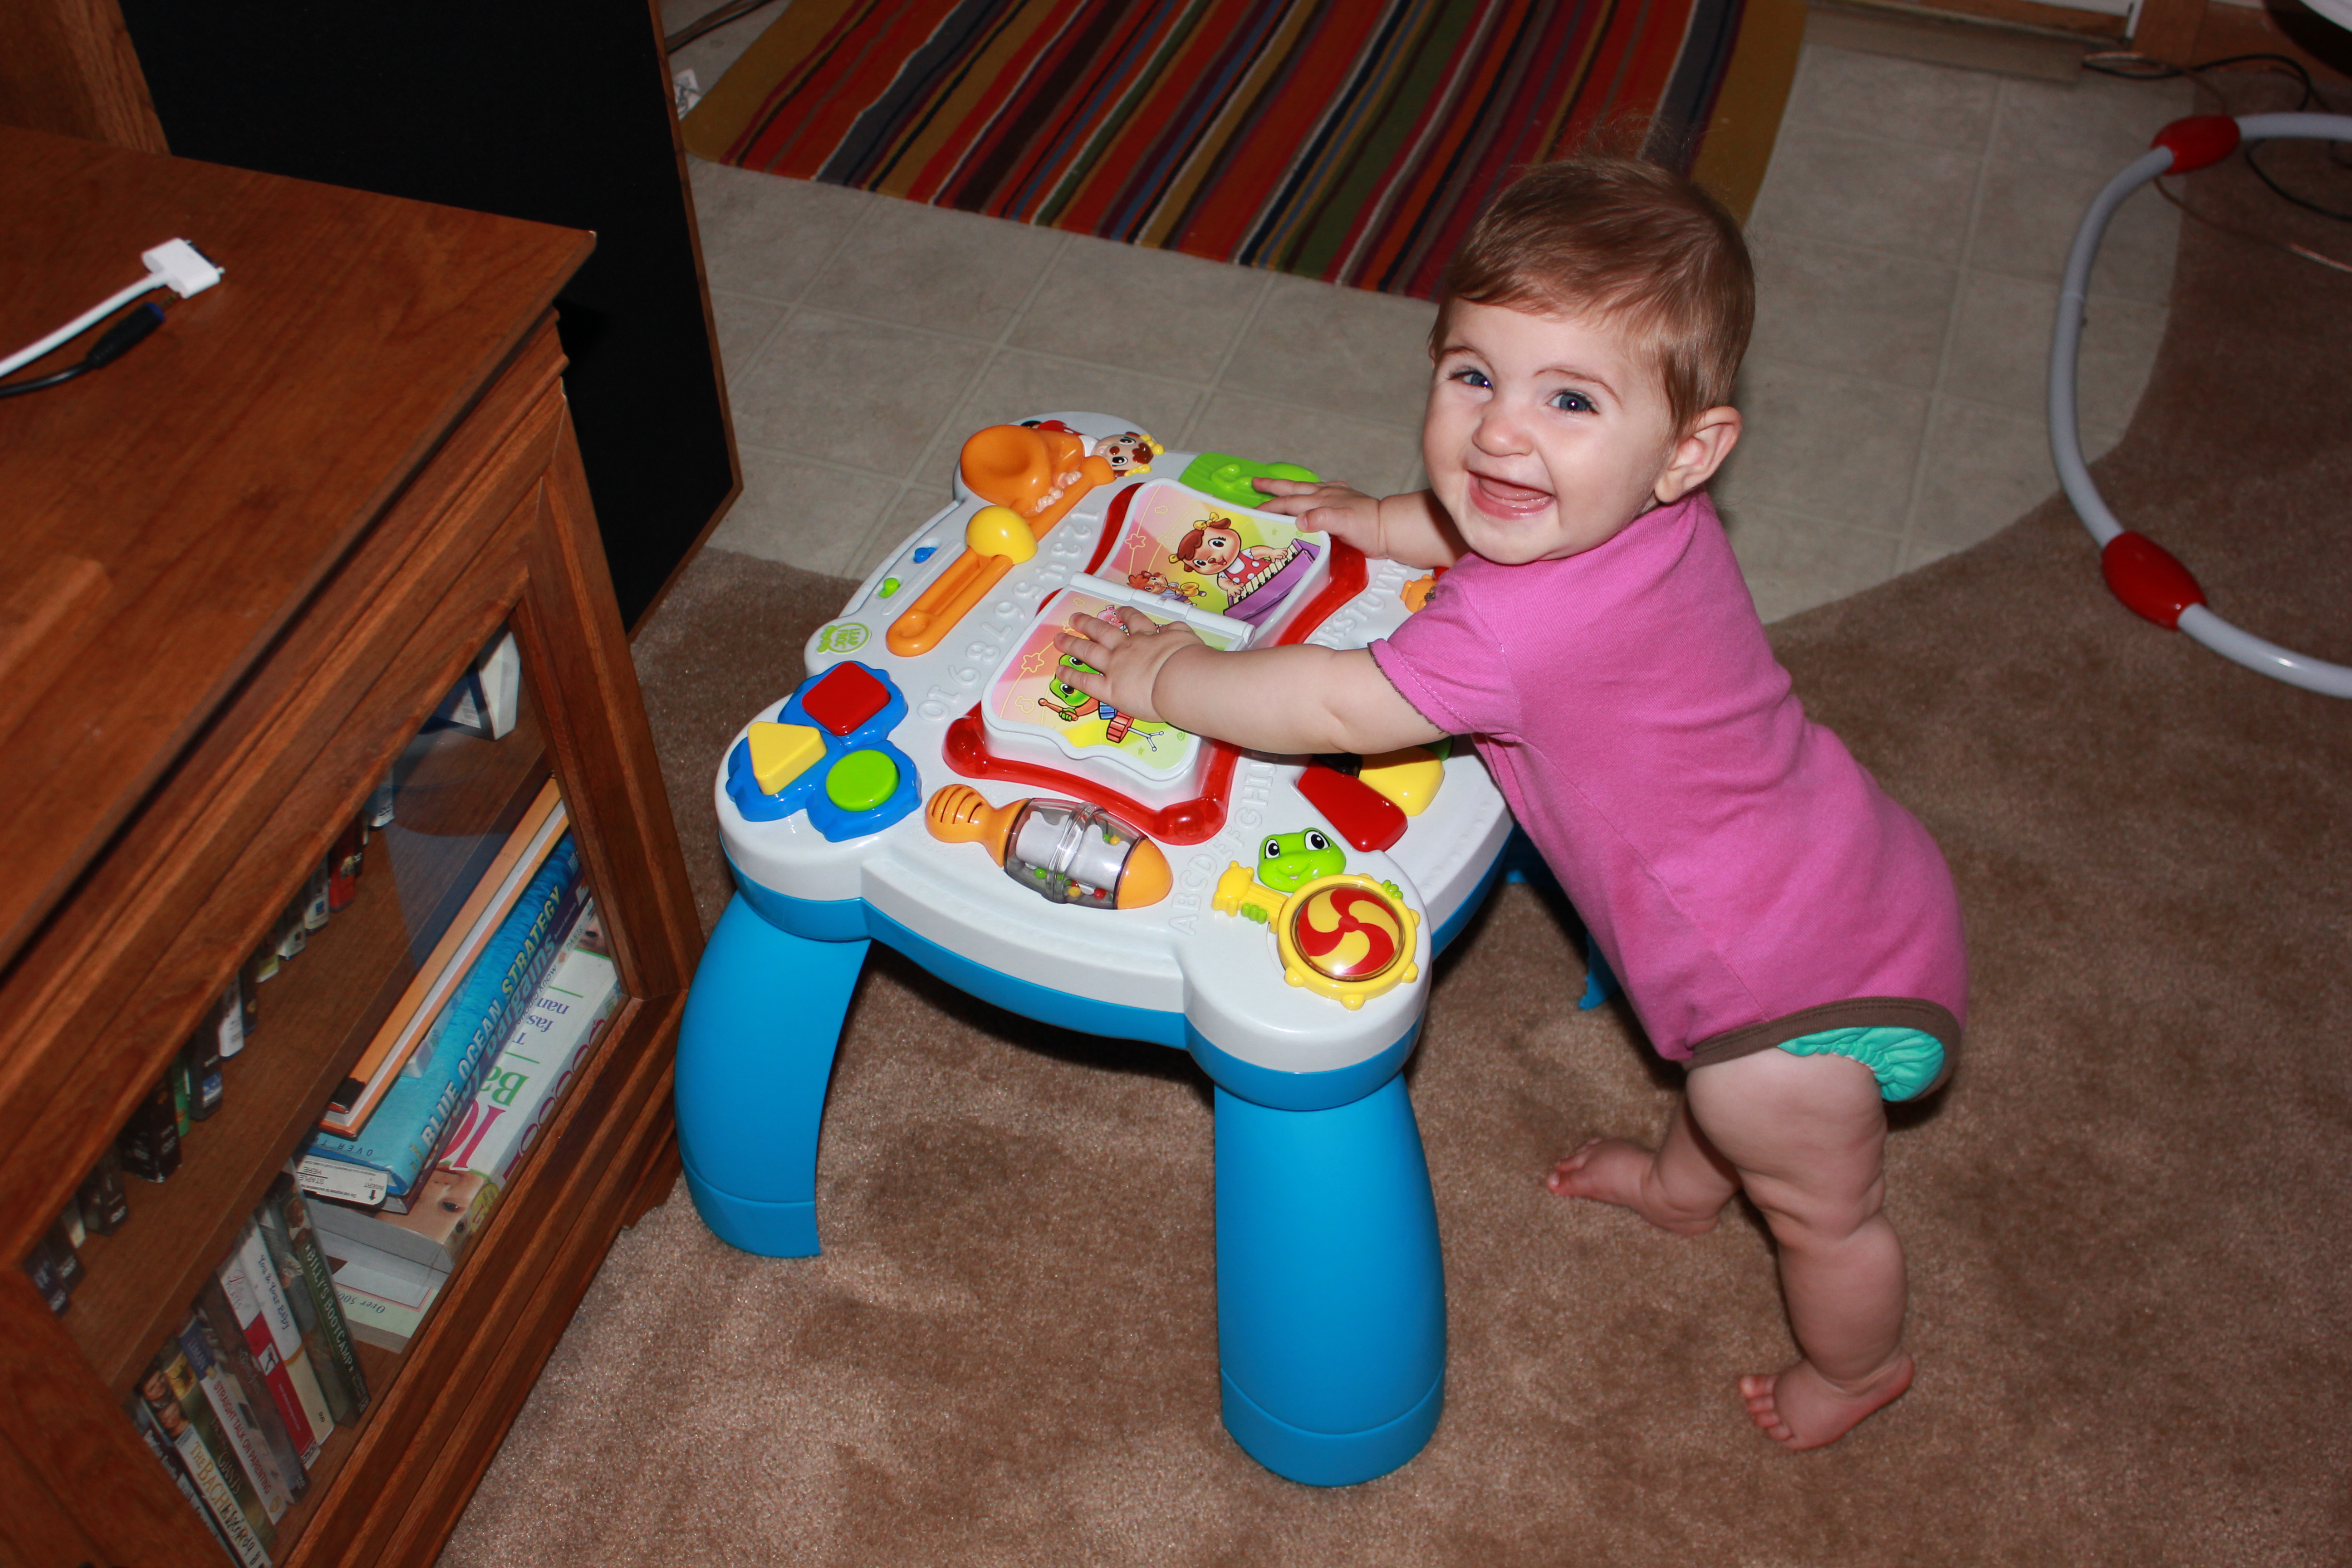 Top 10 Baby Must haves ages 6 12 months Part II